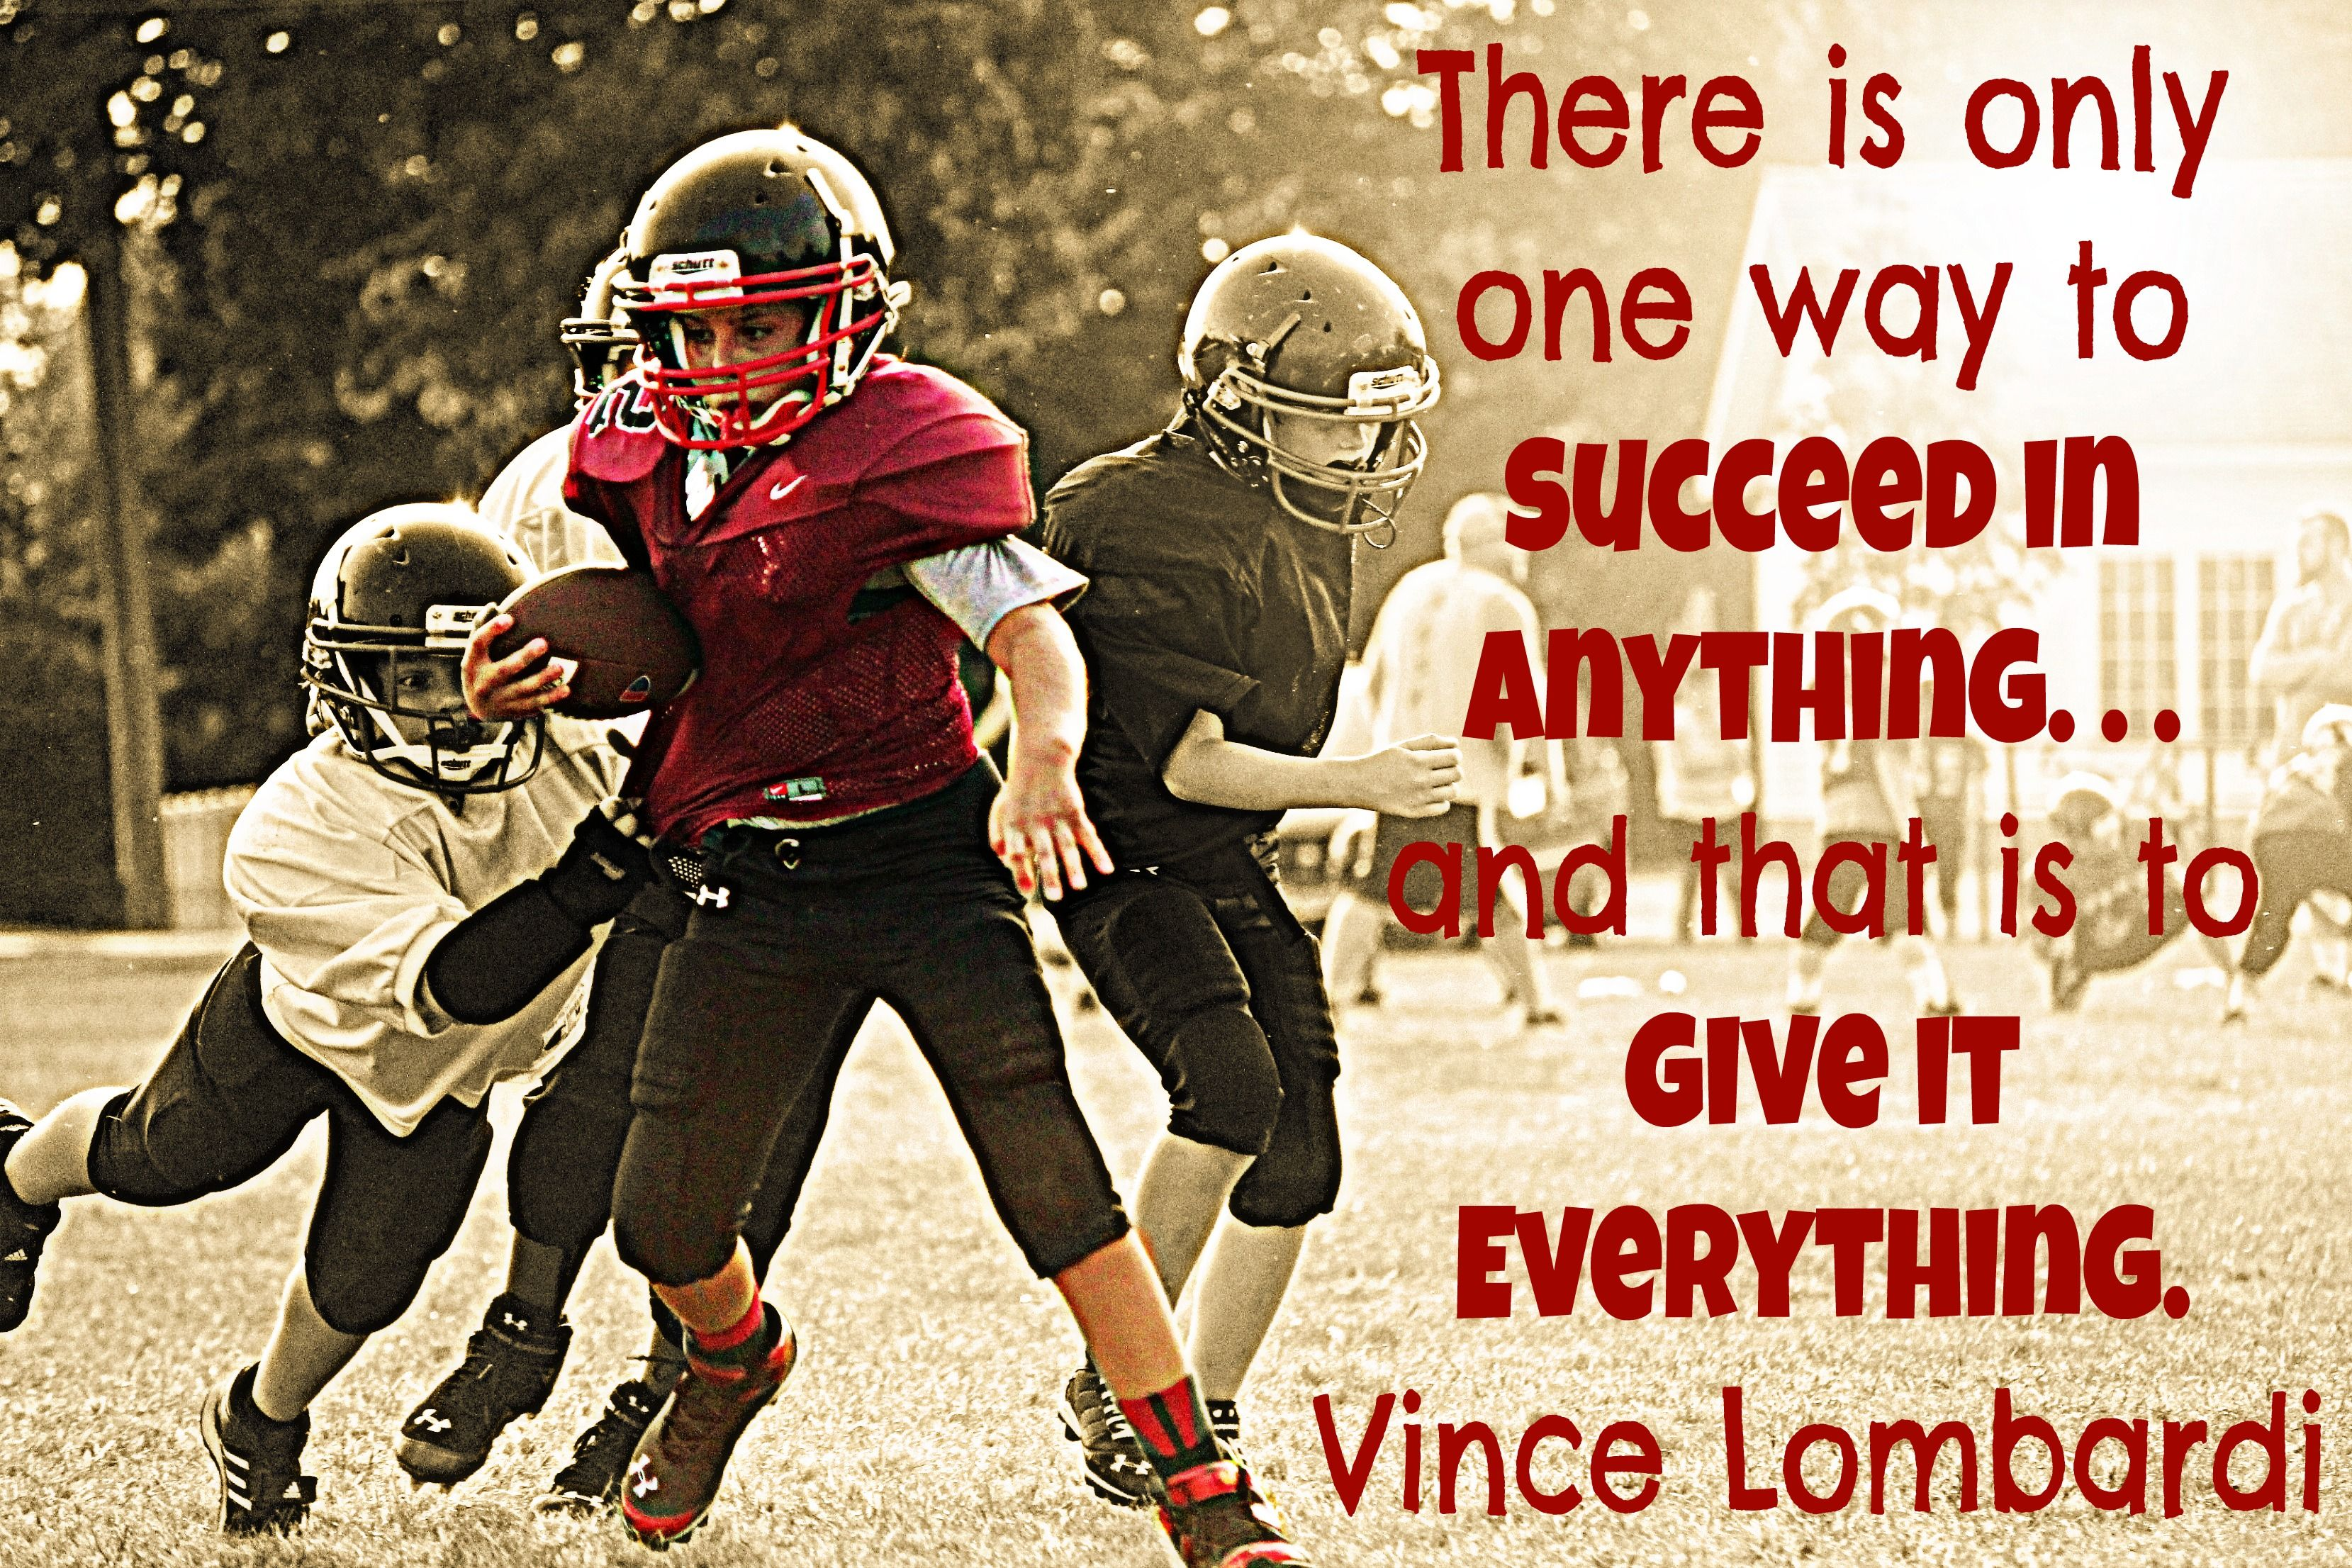 Inspirational Football Vince Lombardi Quote Football